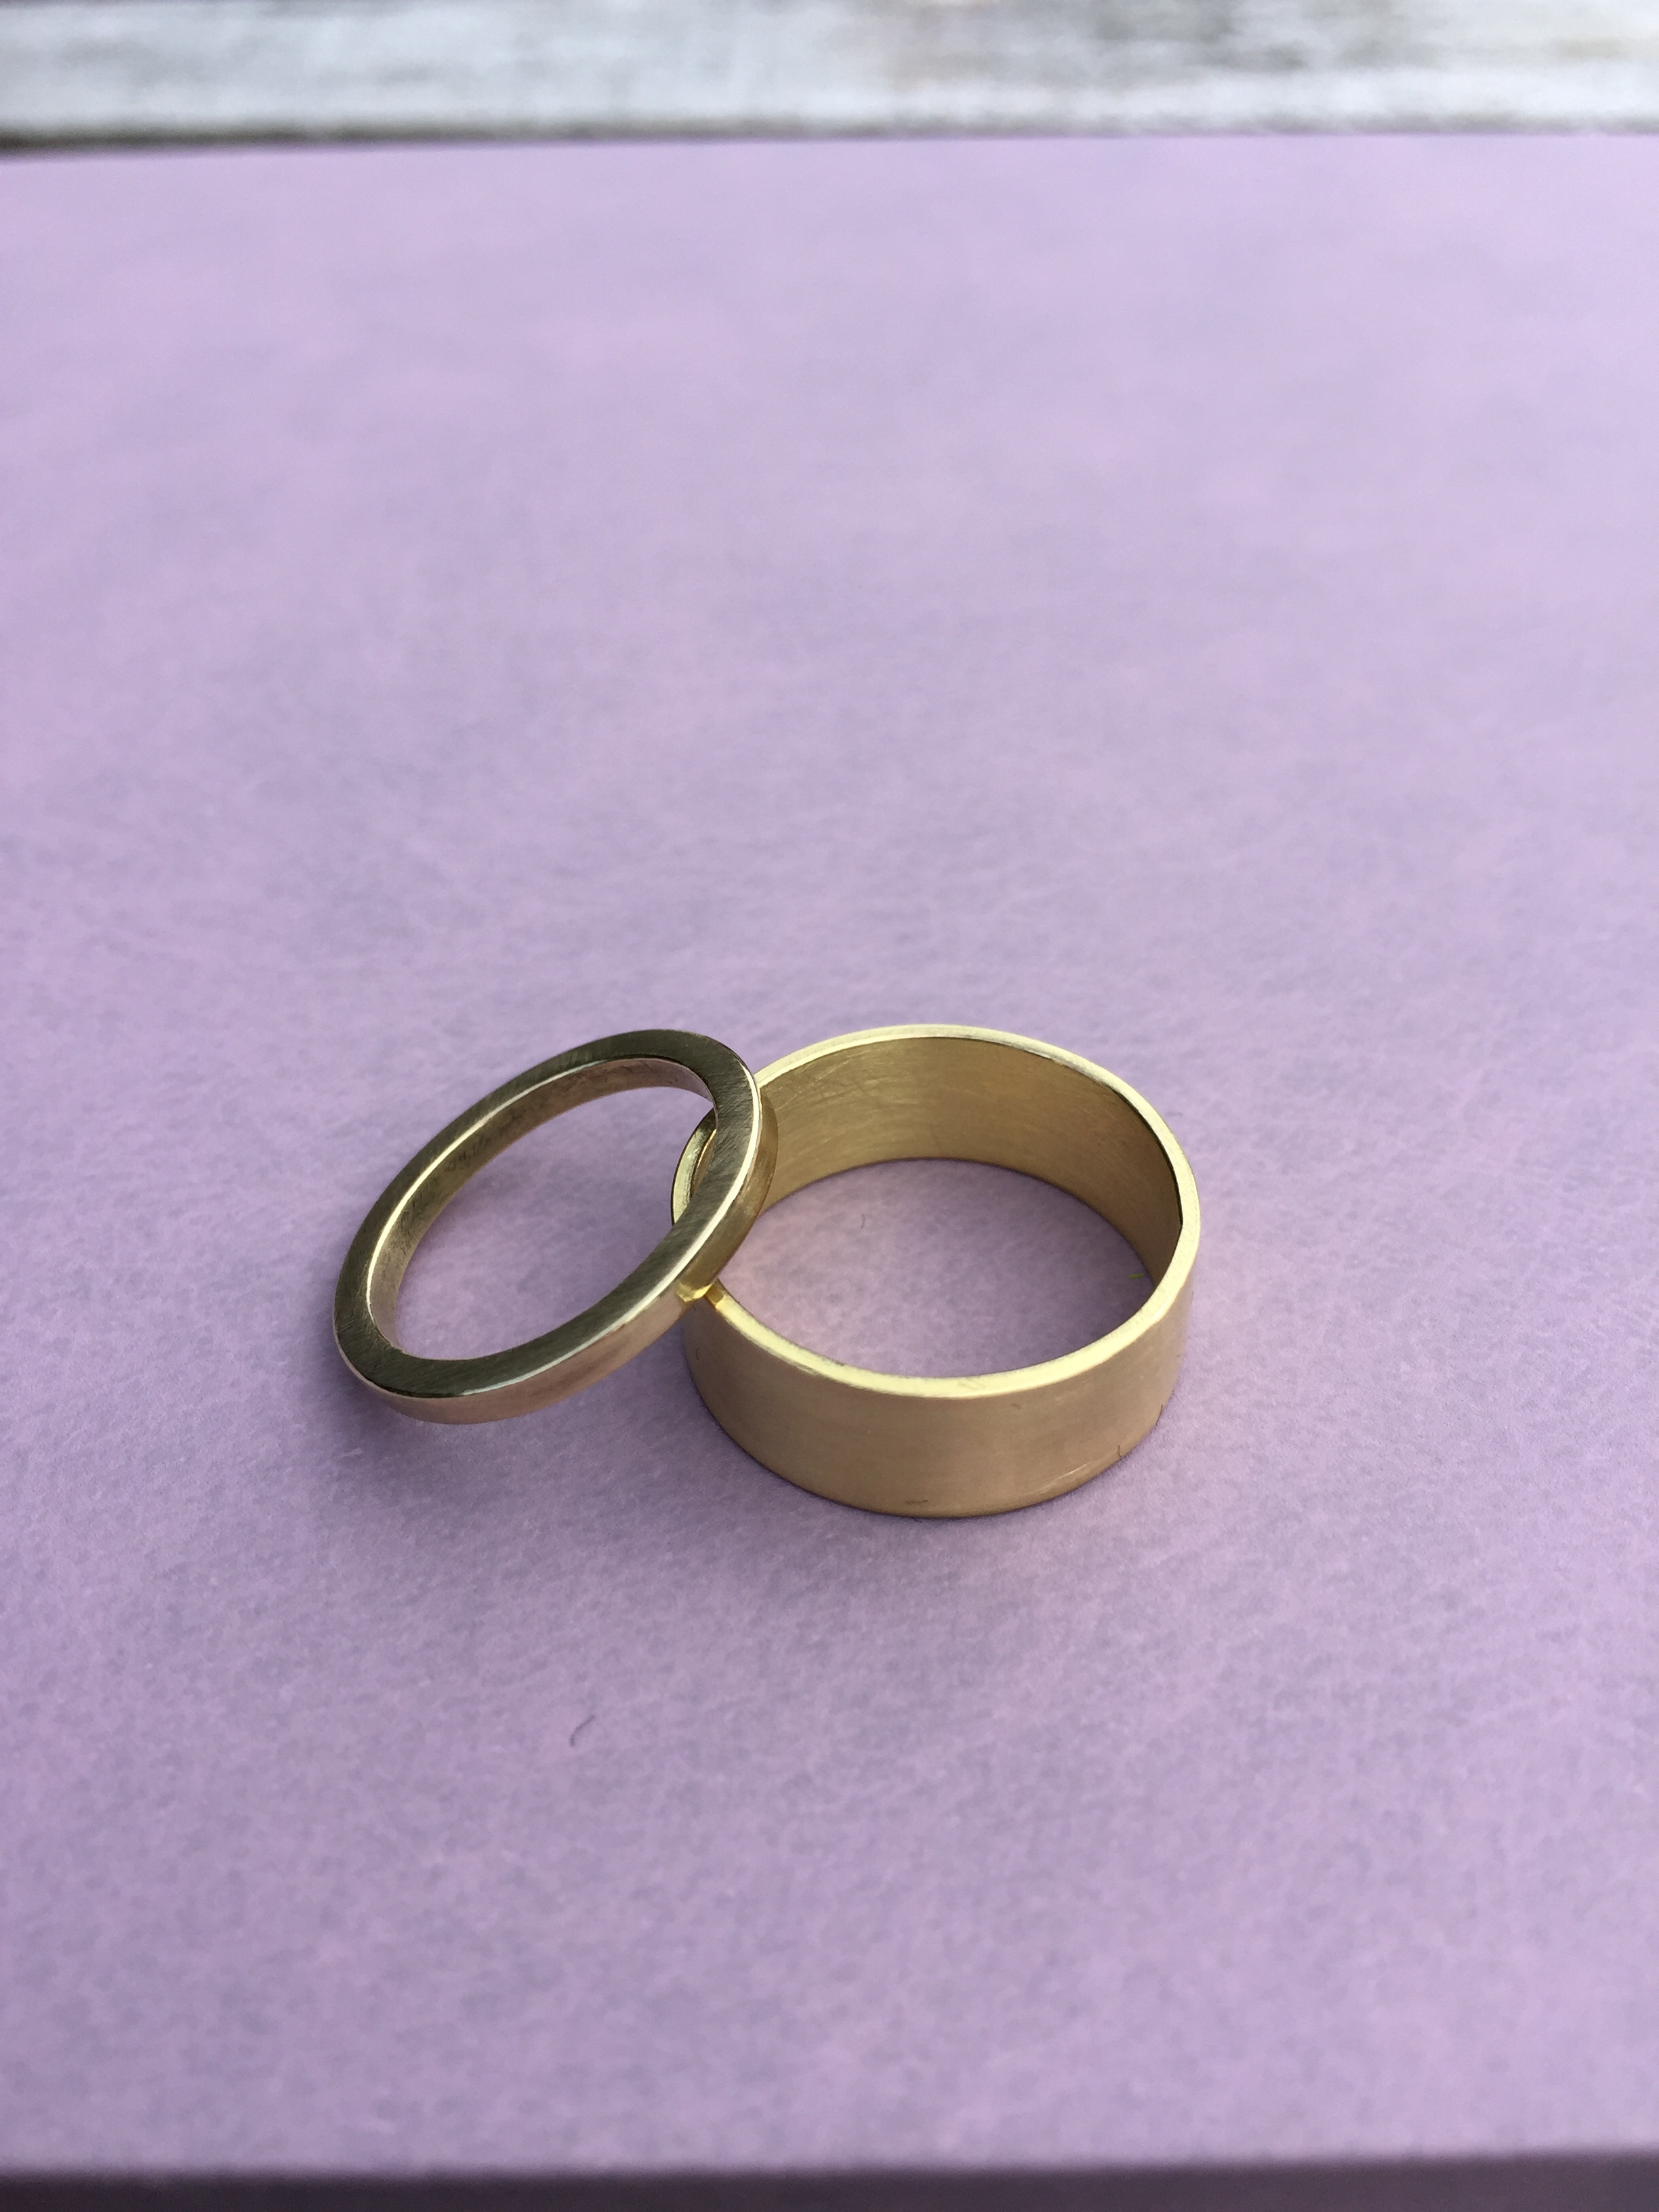 Daniel and Marianne - Two 18ct yellow gold ring